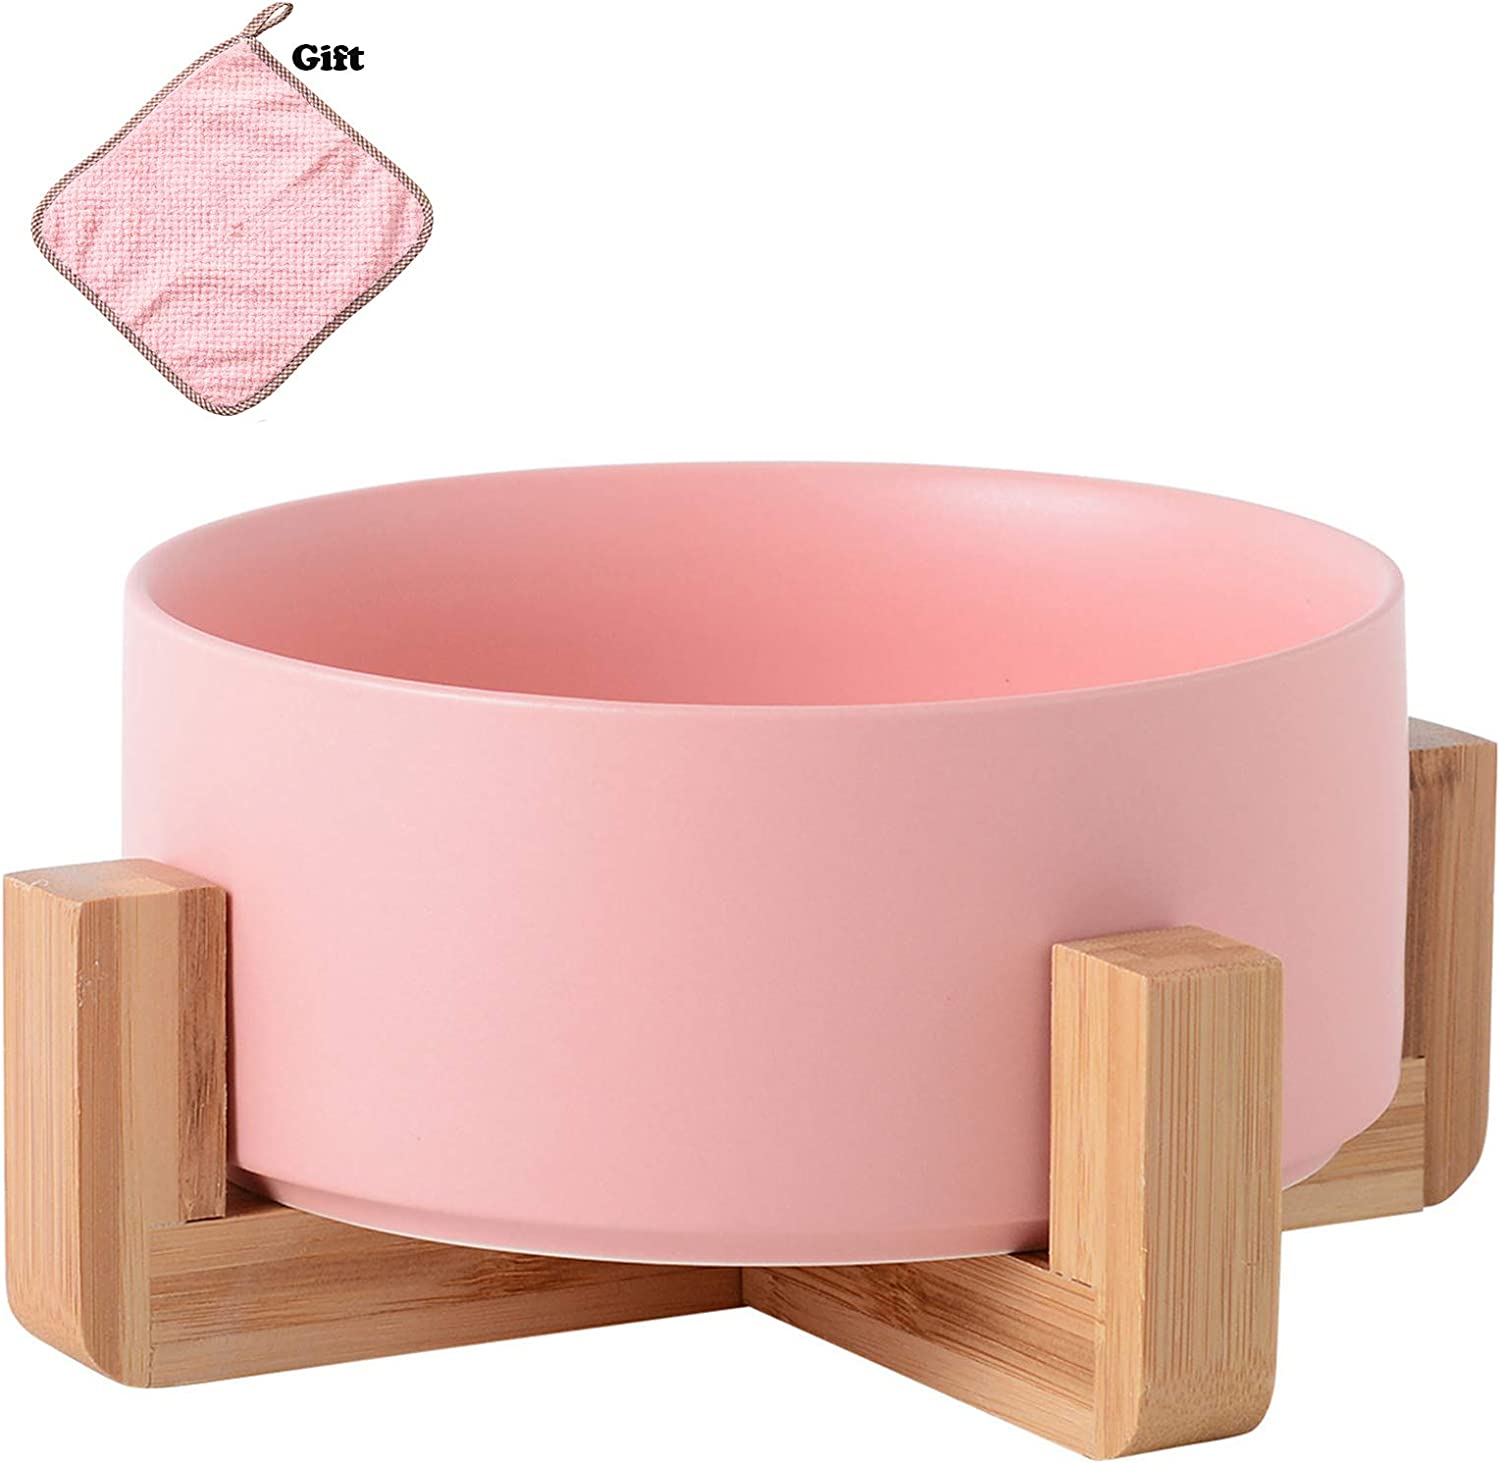 choemore Pet Ceramic Bowl, Wooden Support Base, Very Suitable for Wet Food, Dry Food and Water, to Protect The Spine of Pets, Dishwasher Safe and Clean